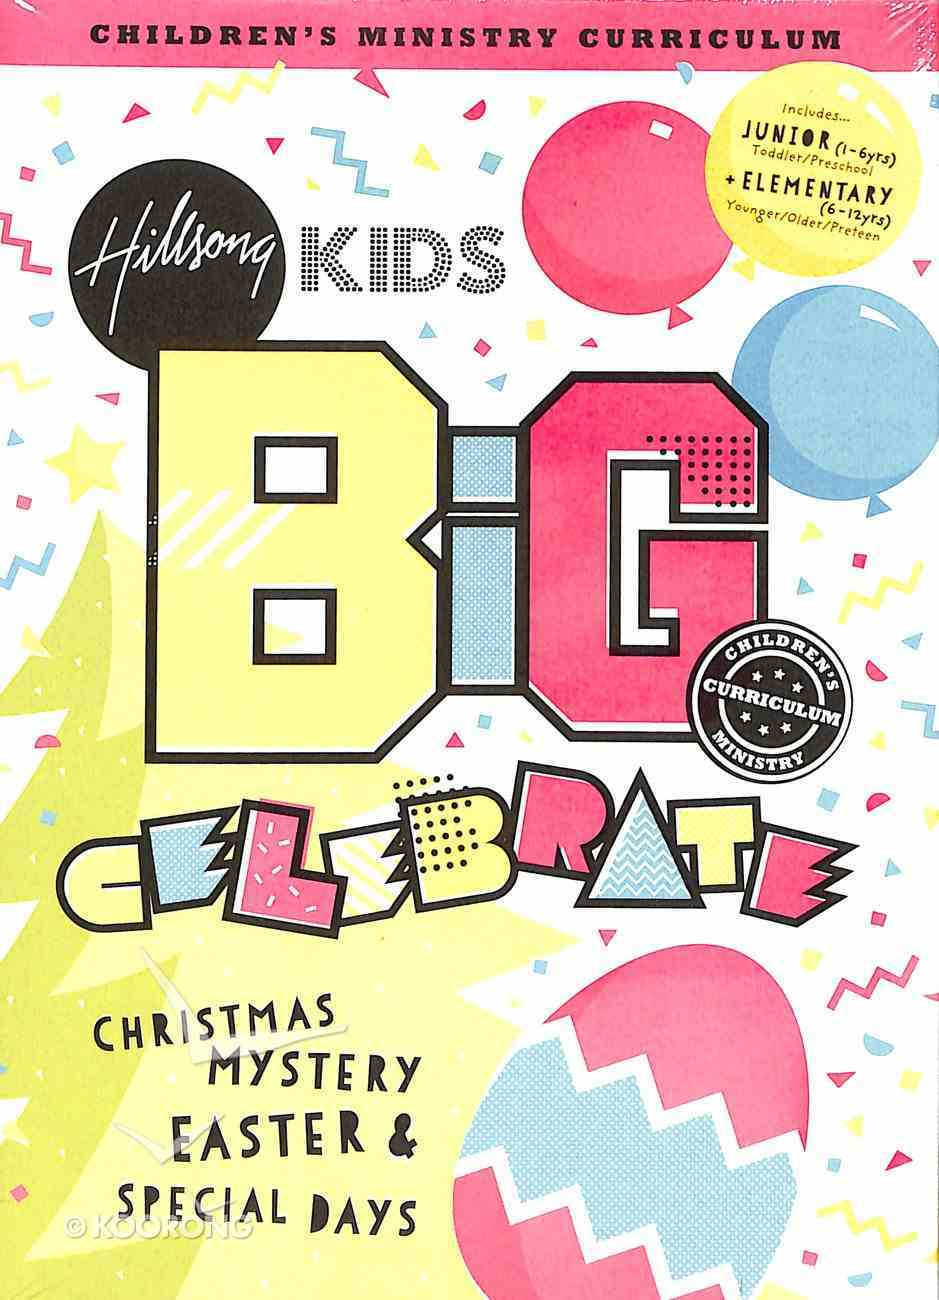 Celebrate! Christmas, Easter & Special Days (Hillsong Kids Big Curriculum Series) Pack